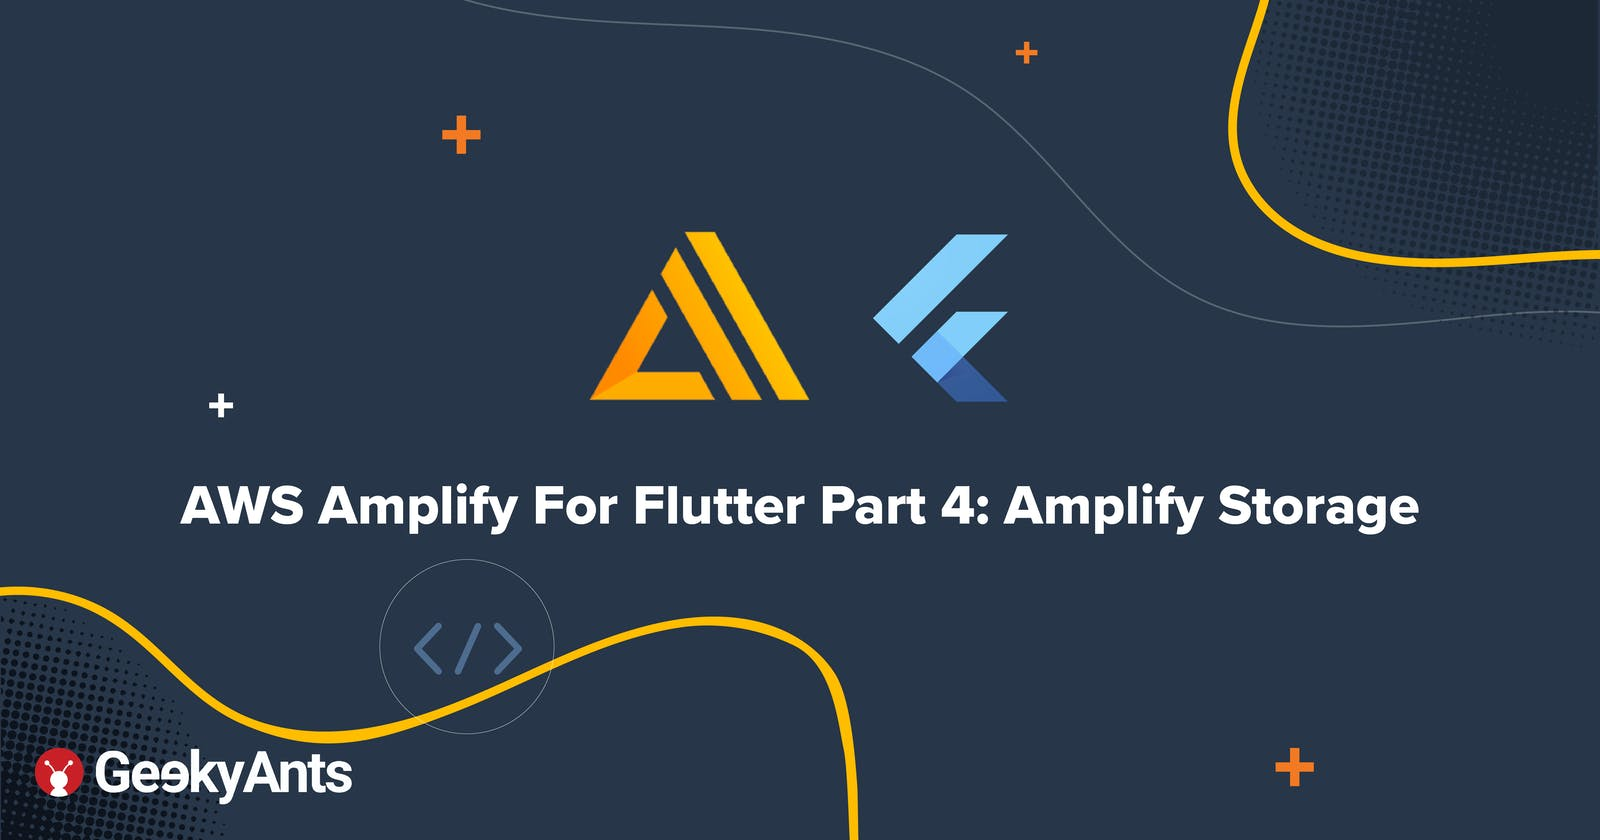 AWS Amplify For Flutter Part 4: Amplify Storage